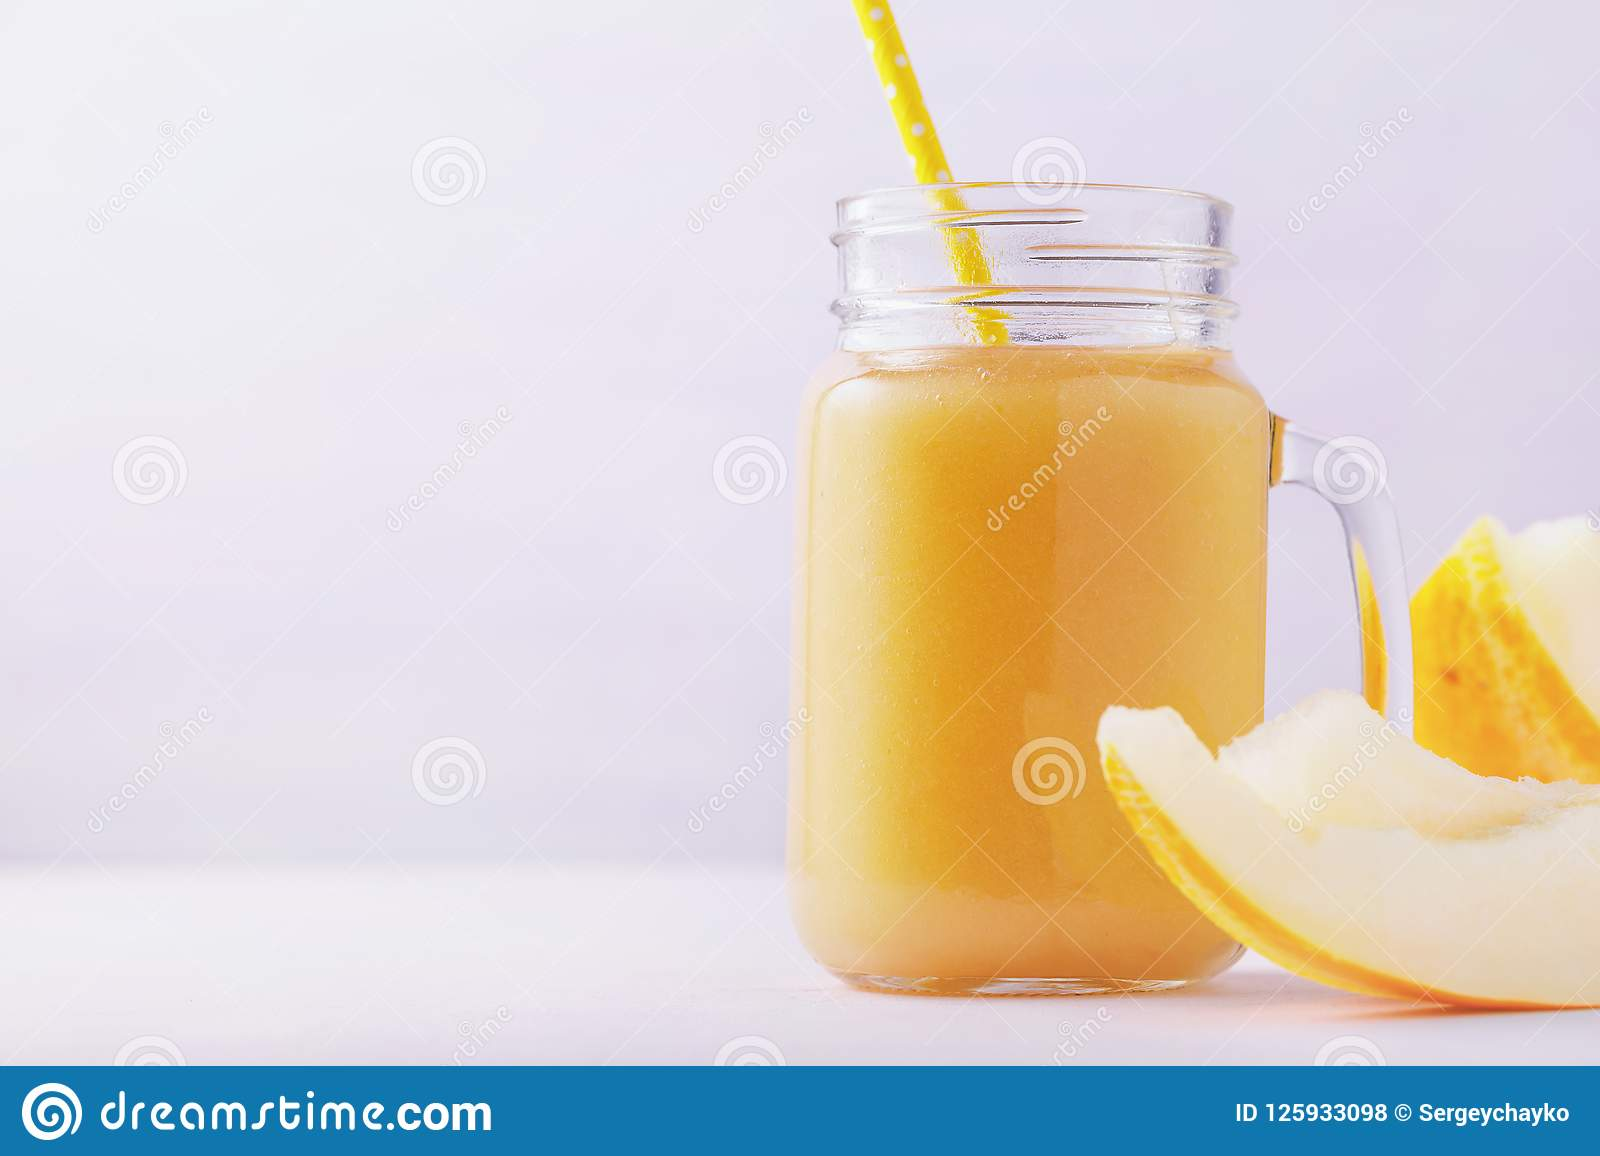 Smoothies cooked from ripe melon in a glass jar